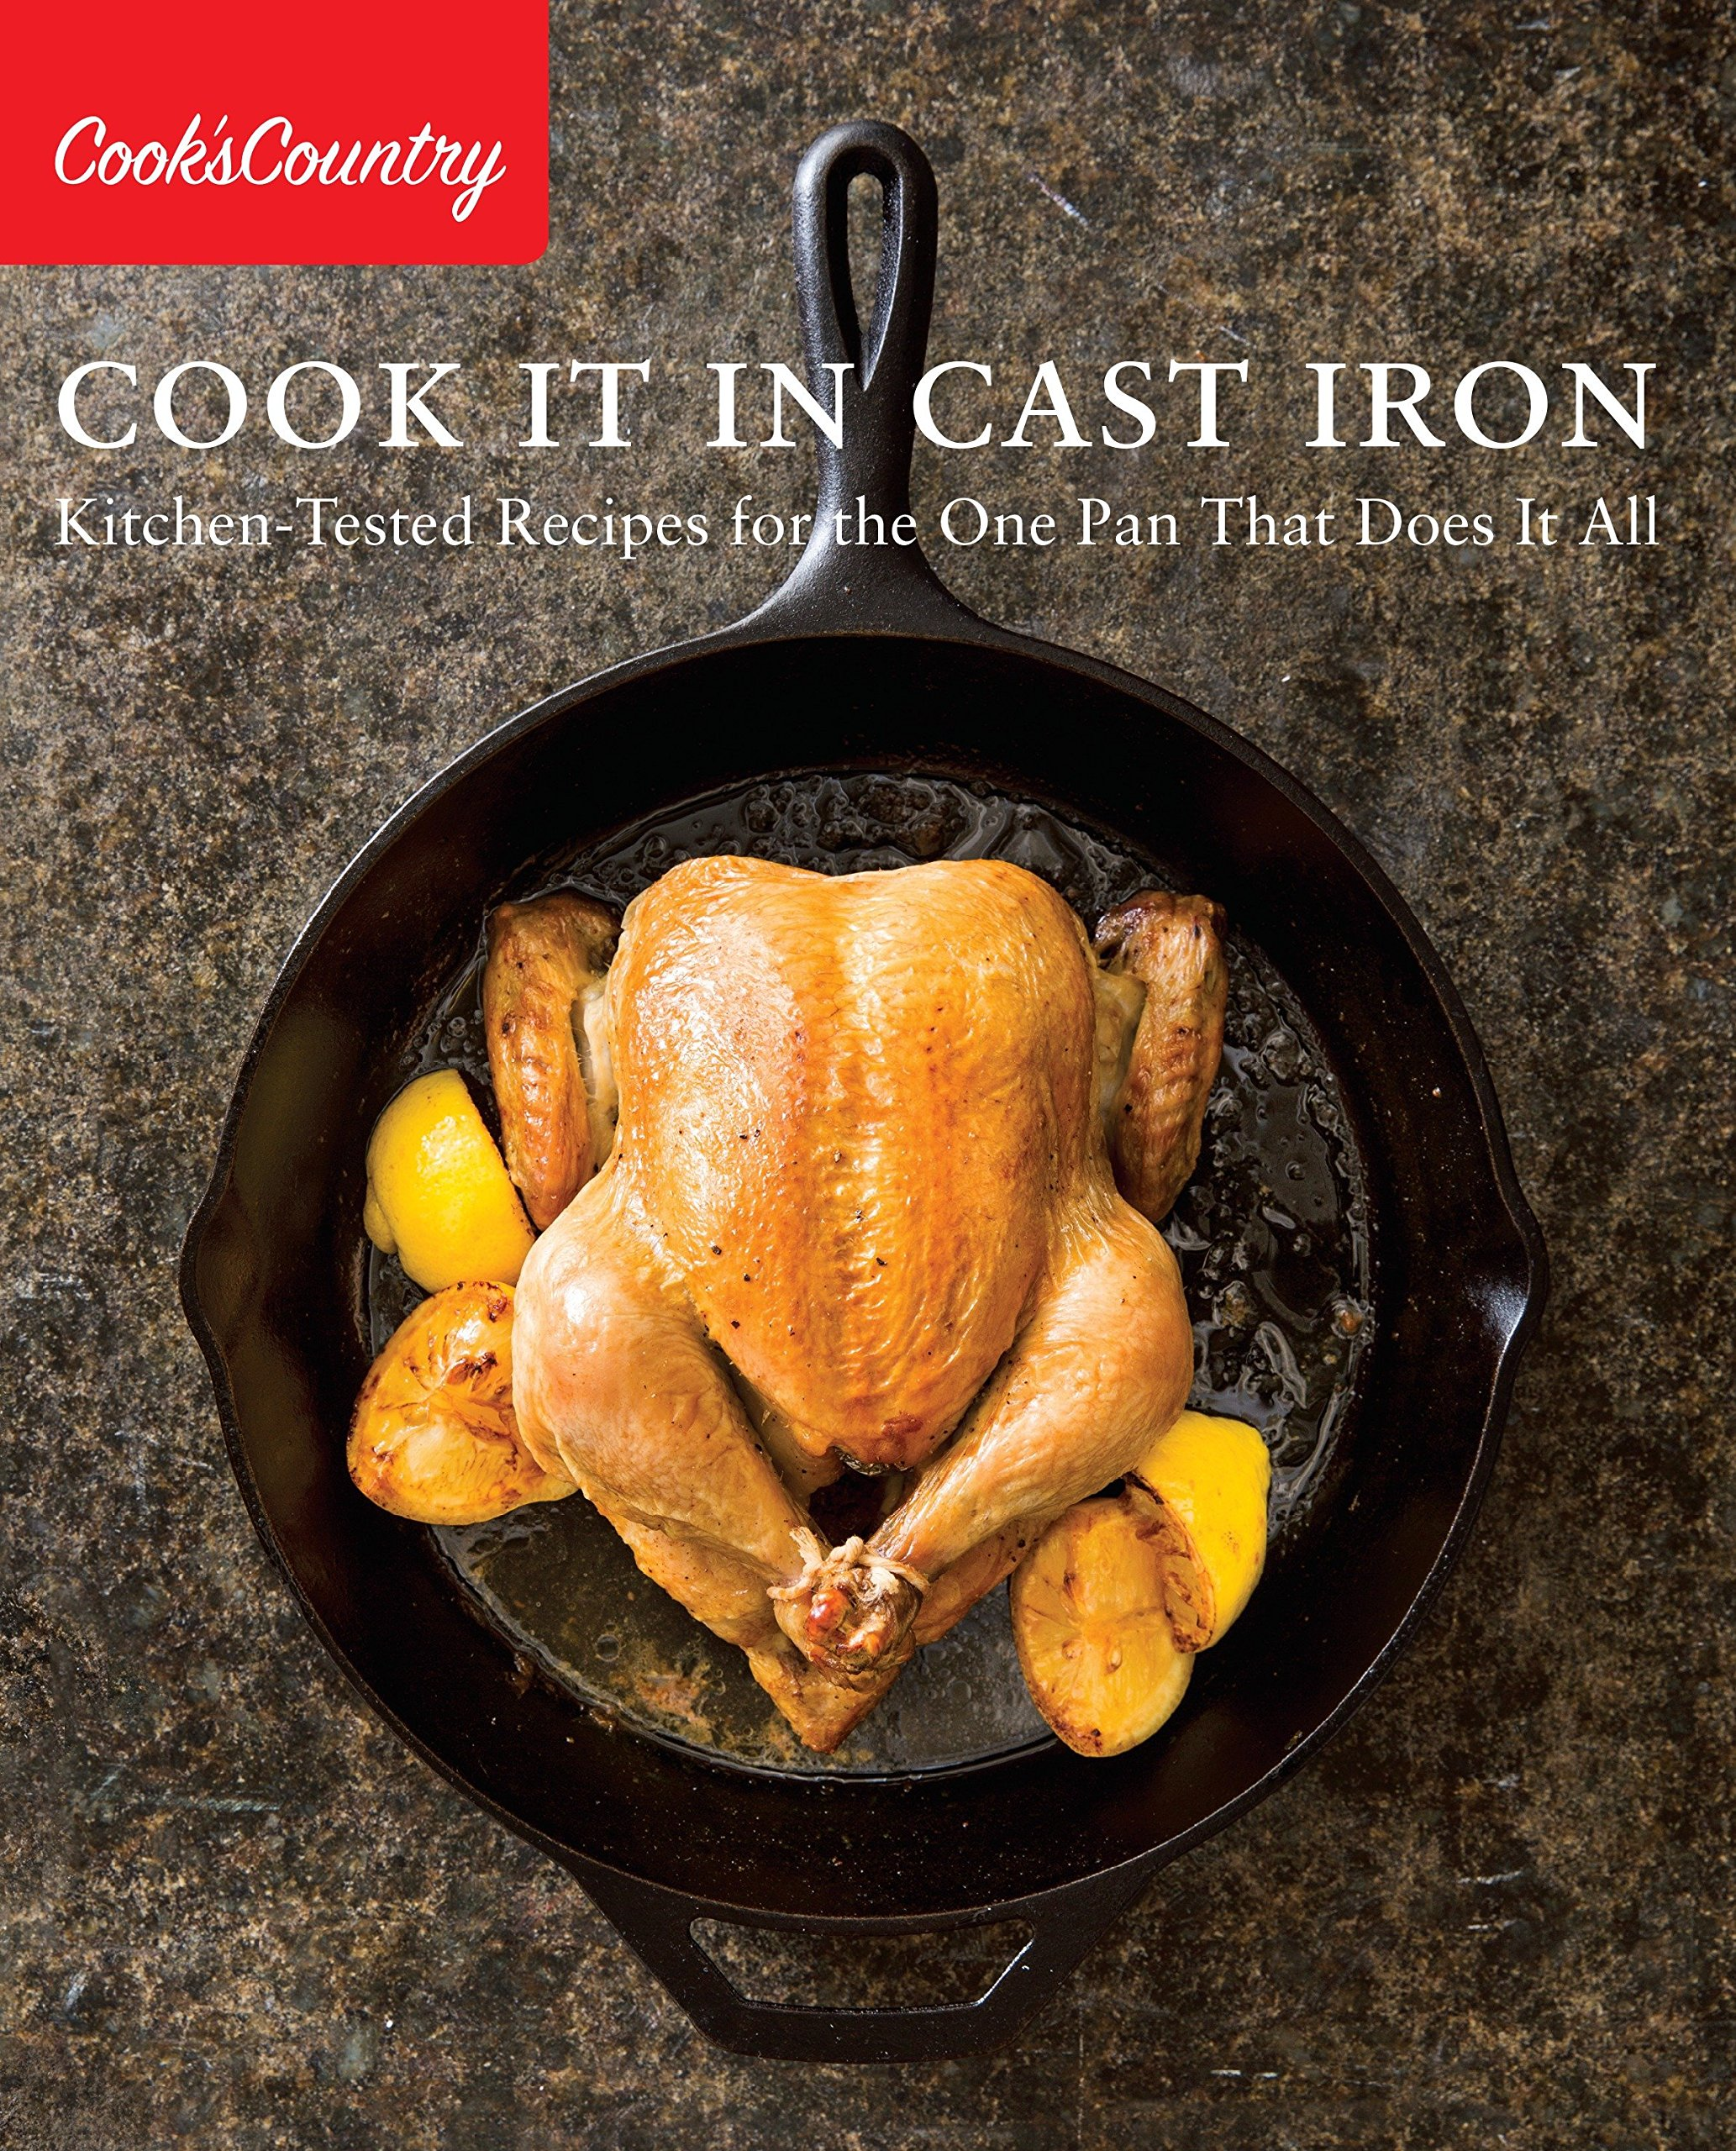 Cook It in Cast Iron: Kitchen-Tested Recipes for the One Pan That Does It All (Cook's Country) by Americas Test Kitchen